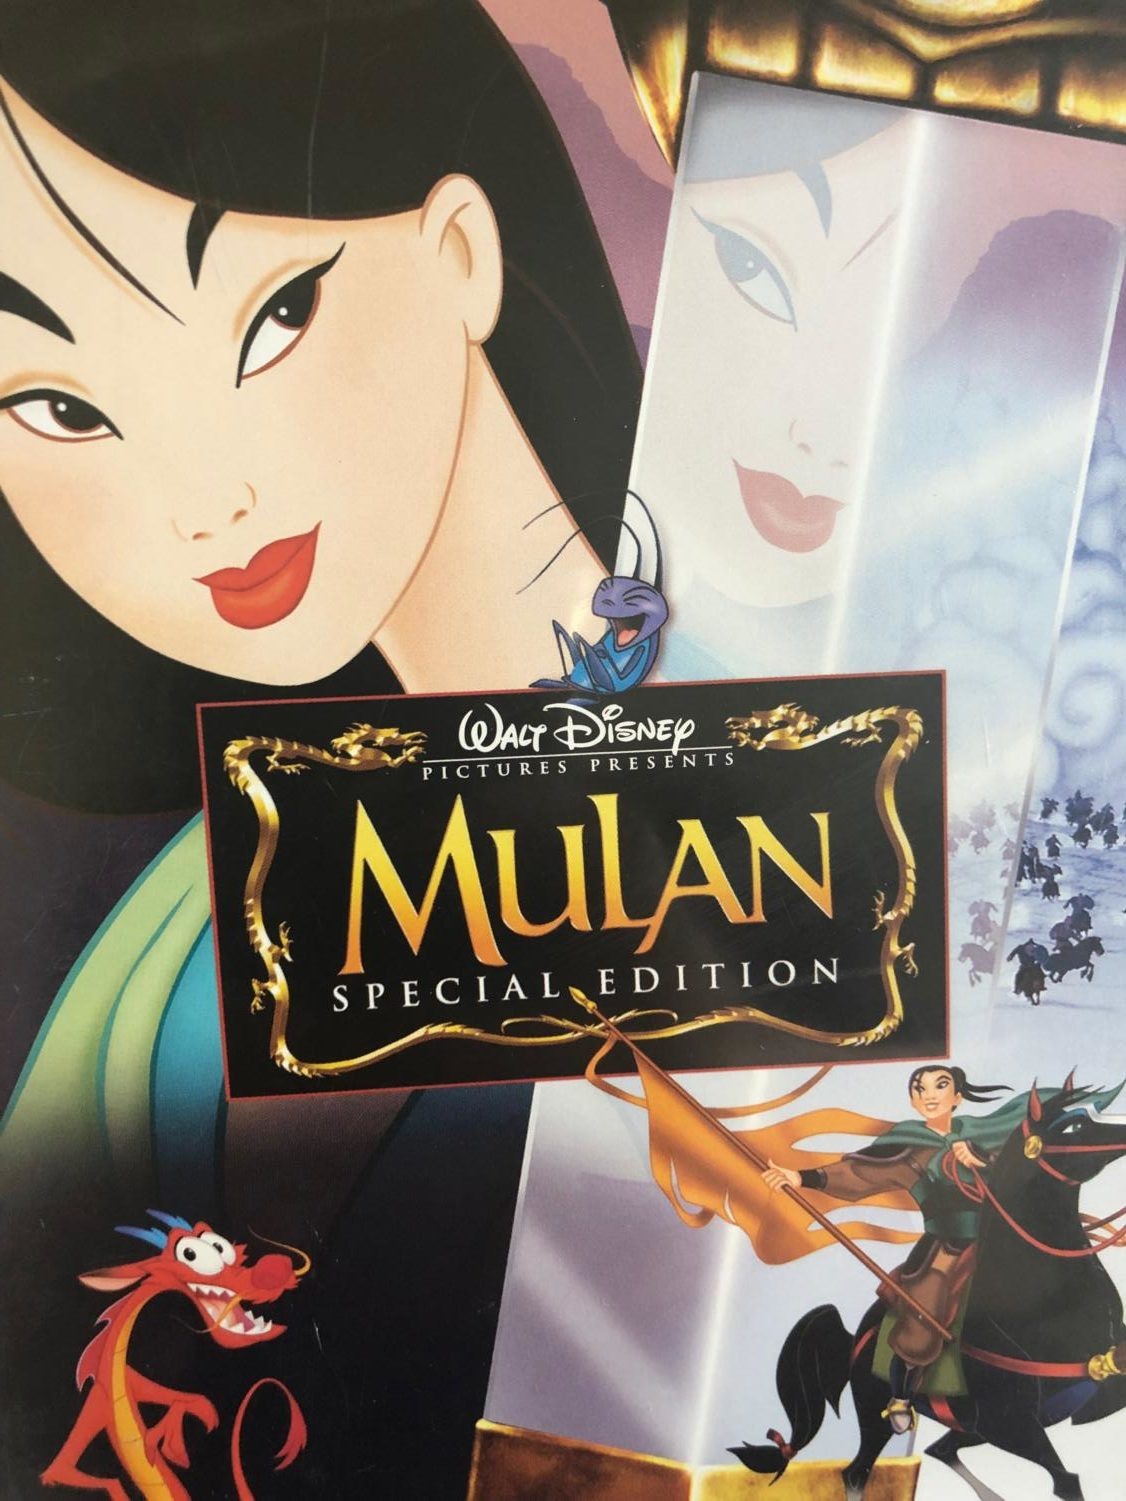 The classic special edition cover for Disney's Mulan.